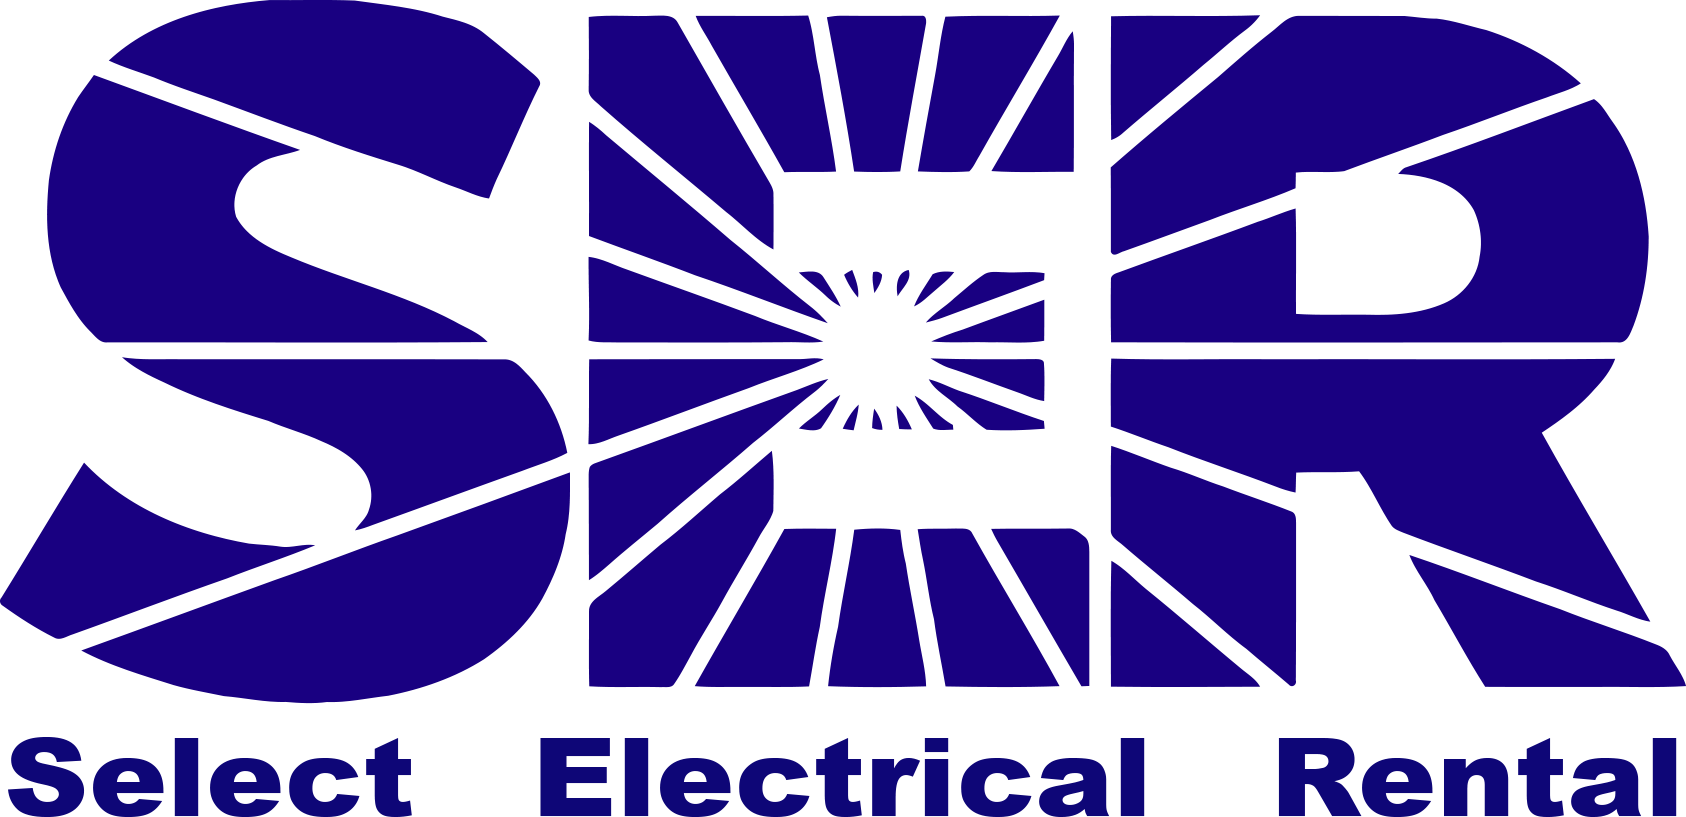 SER Select Electrical⚡Rentals